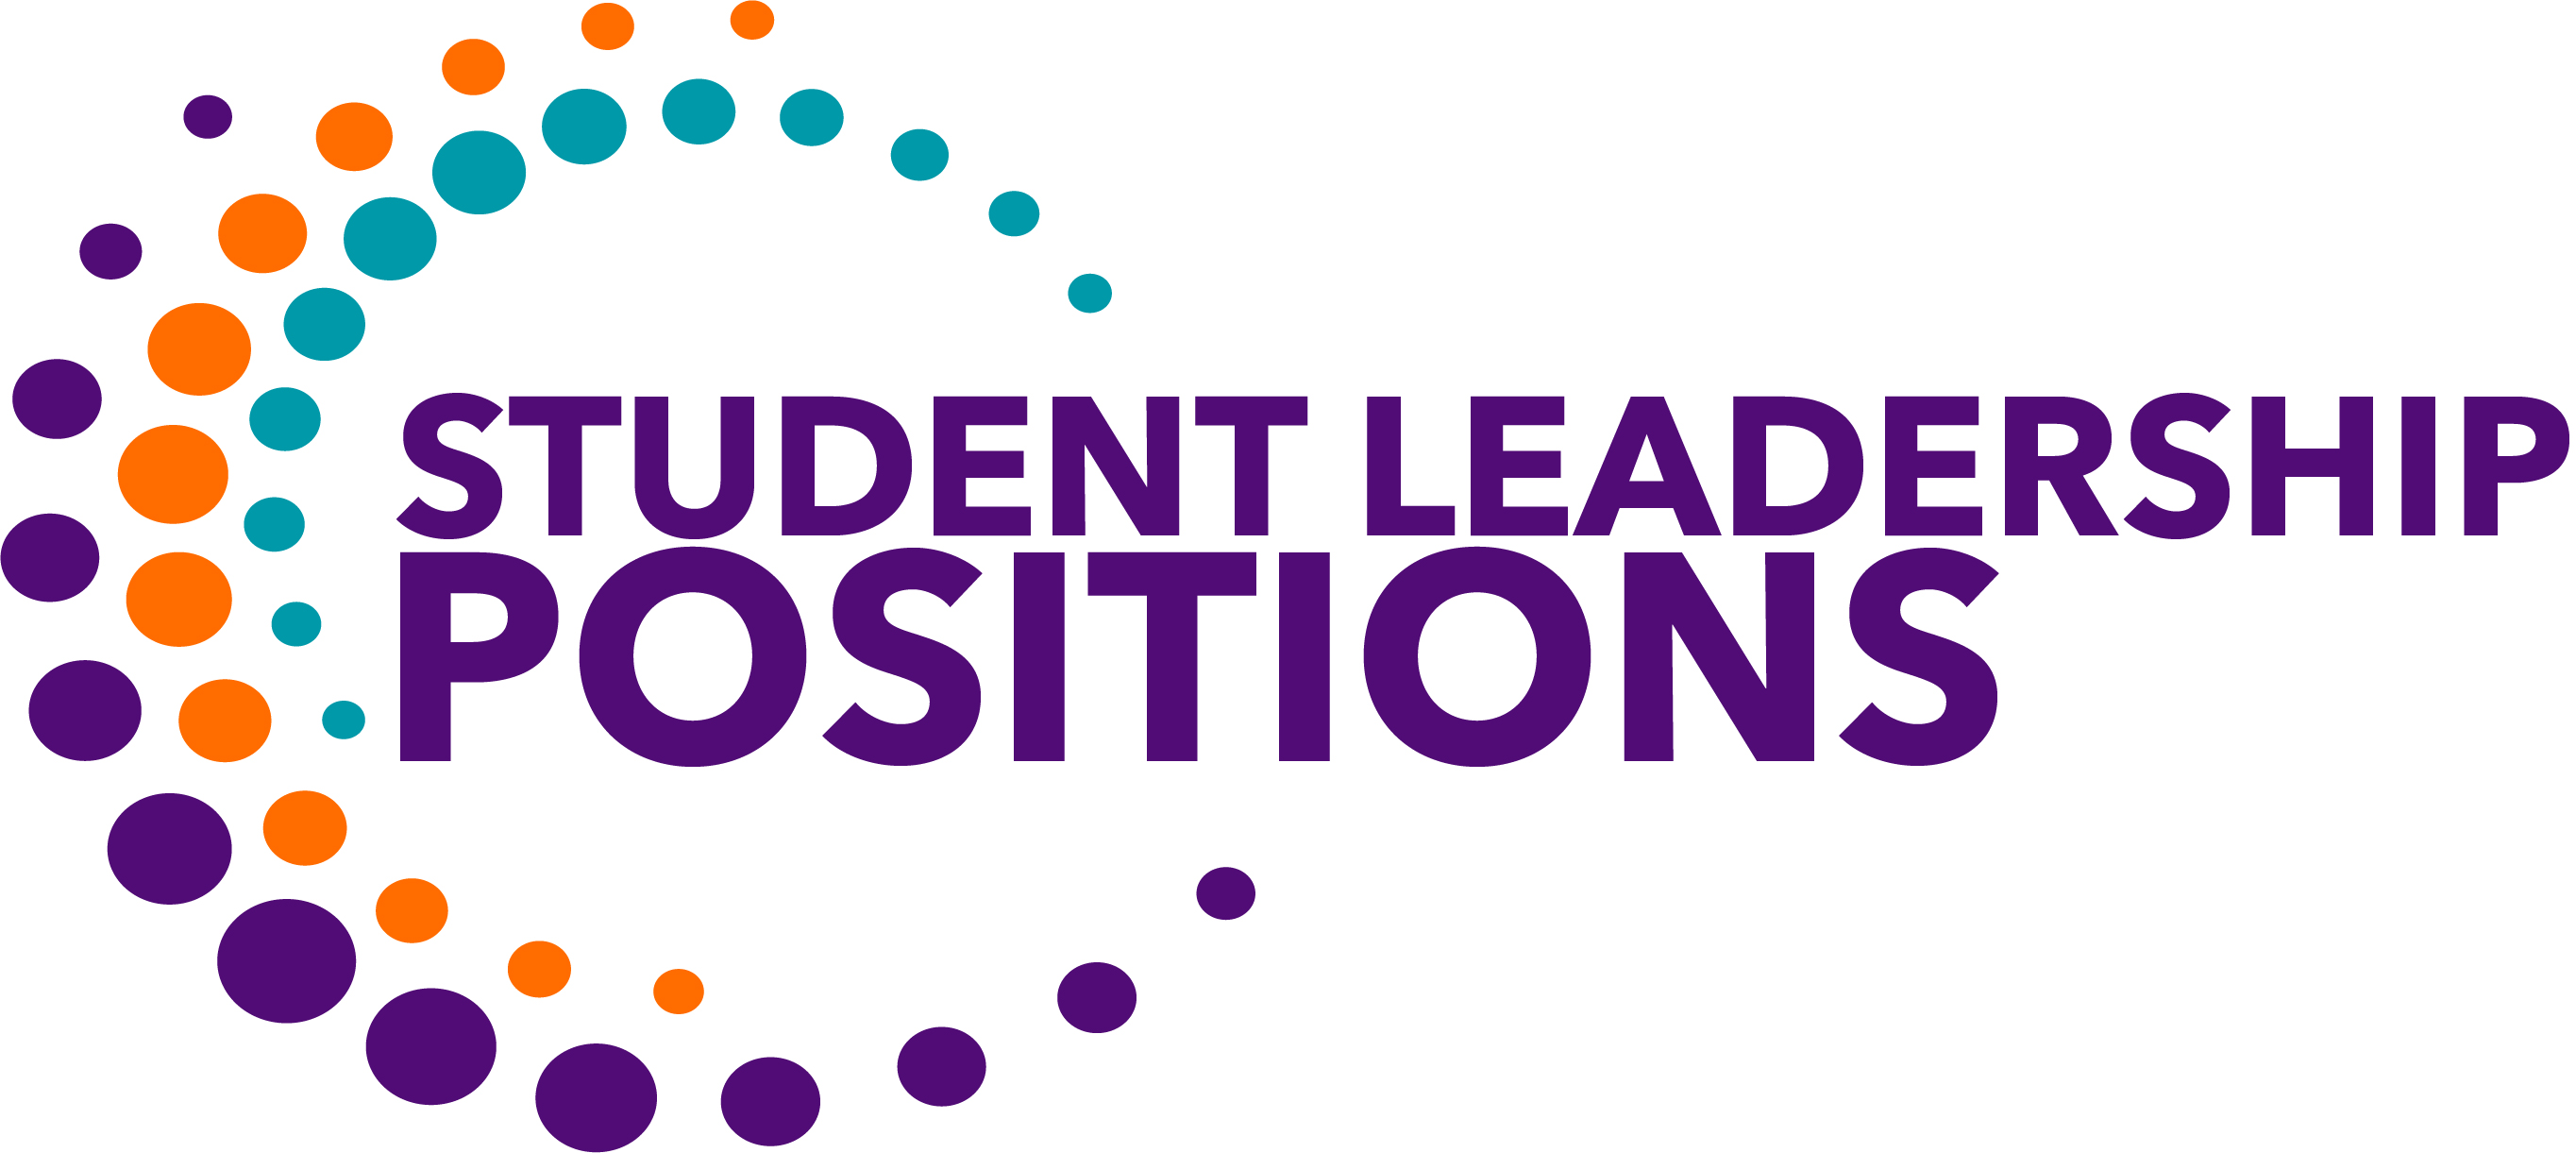 Student Leadership Positions